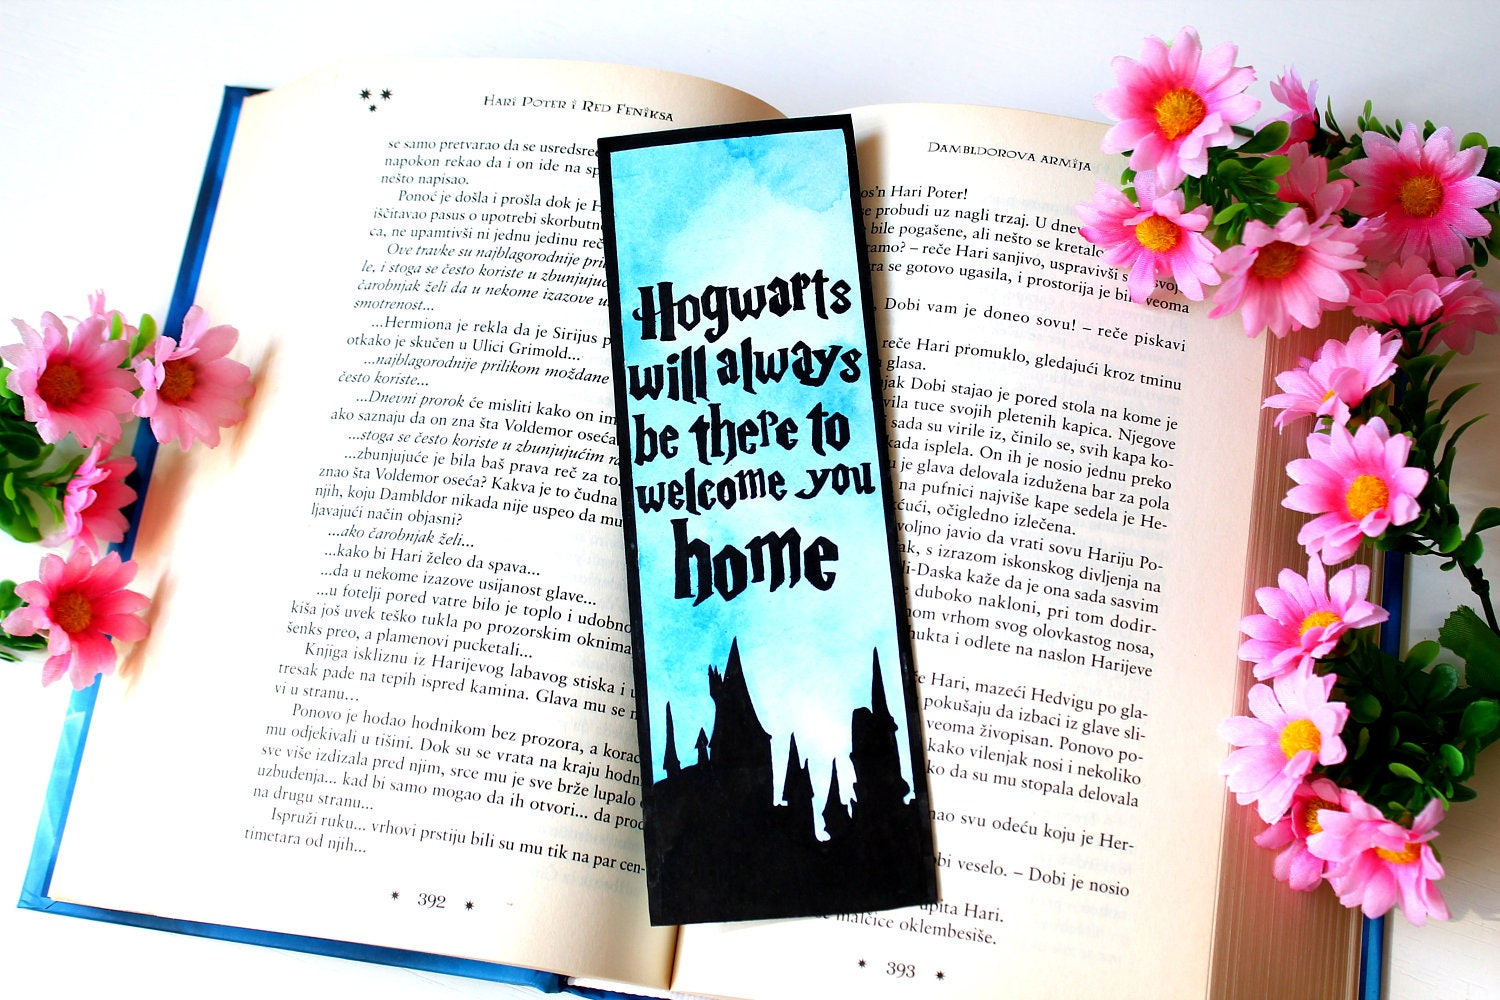 Harry Potter bookmark Harry Potter gift Hogwarts gift Hogwarts